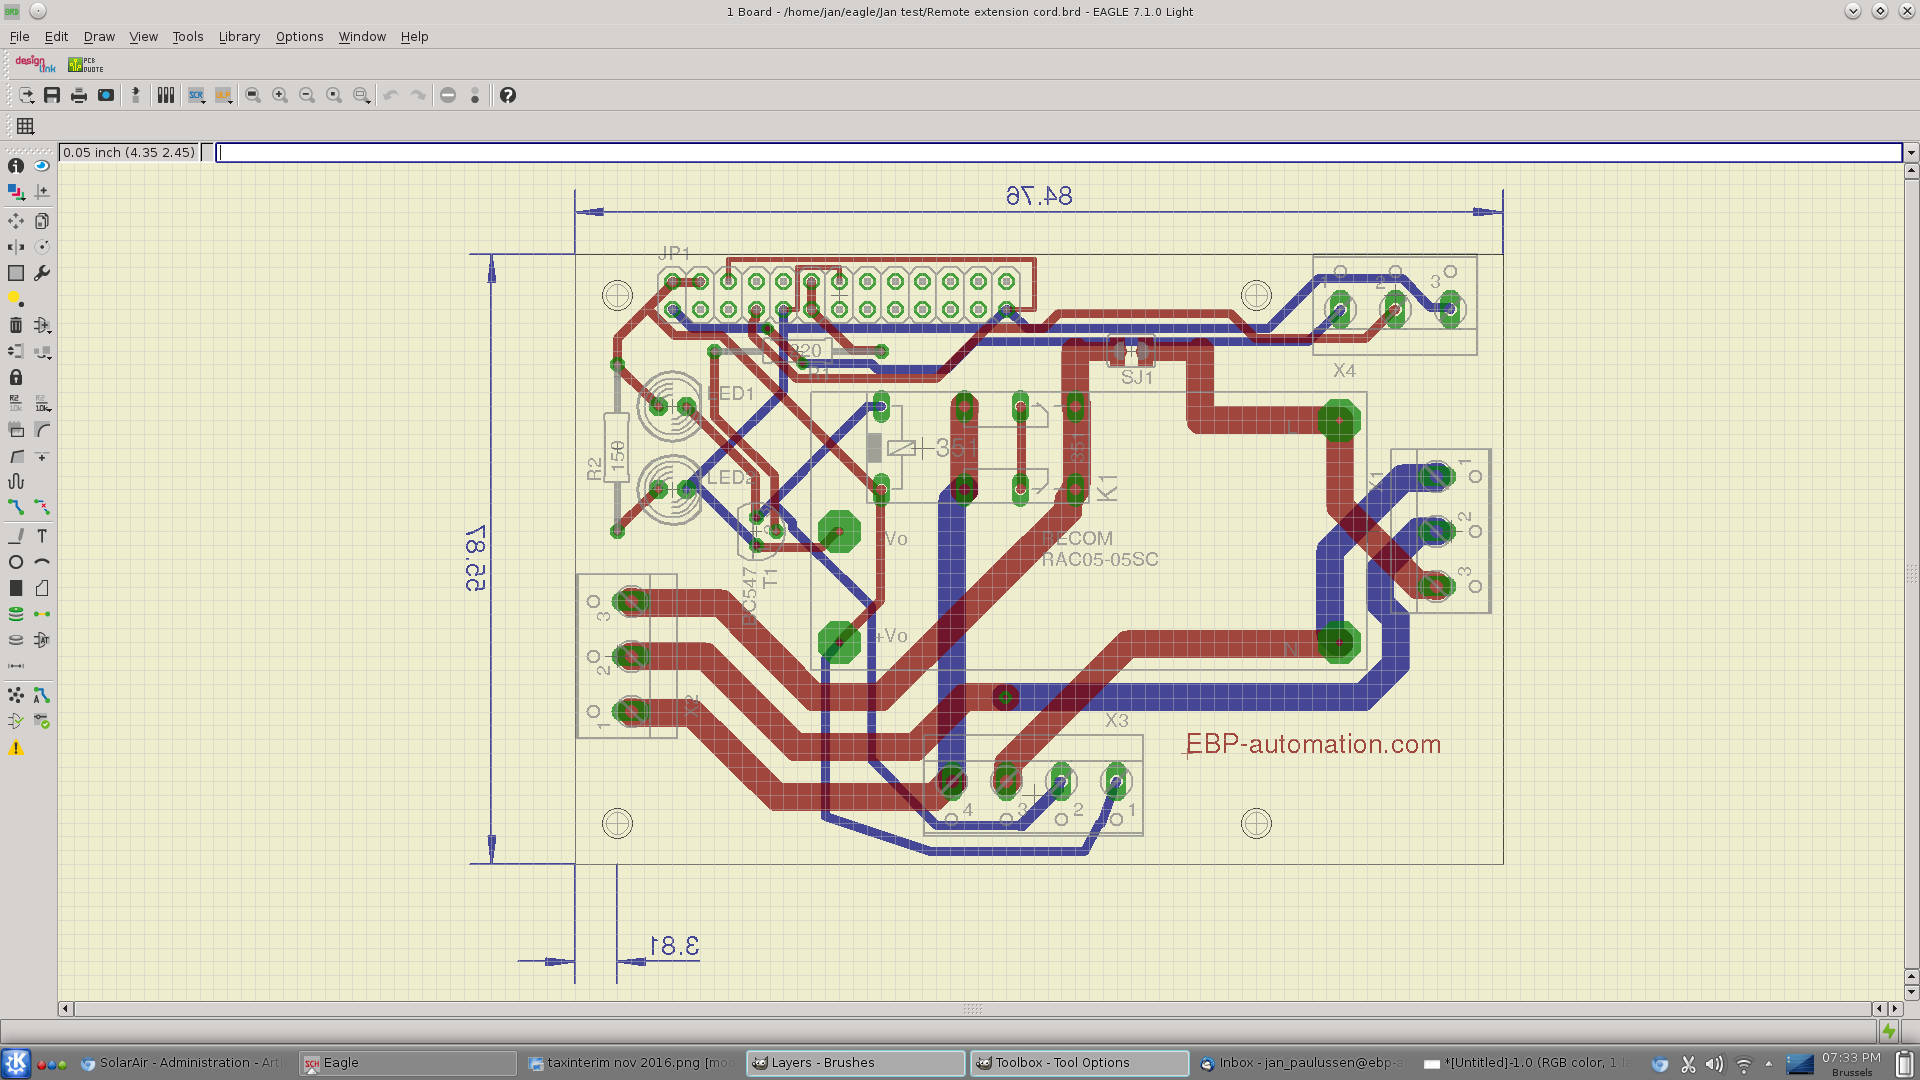 The Hardware Of Controller Eagle Cad Schematic Display Below Pcb Design In Designer